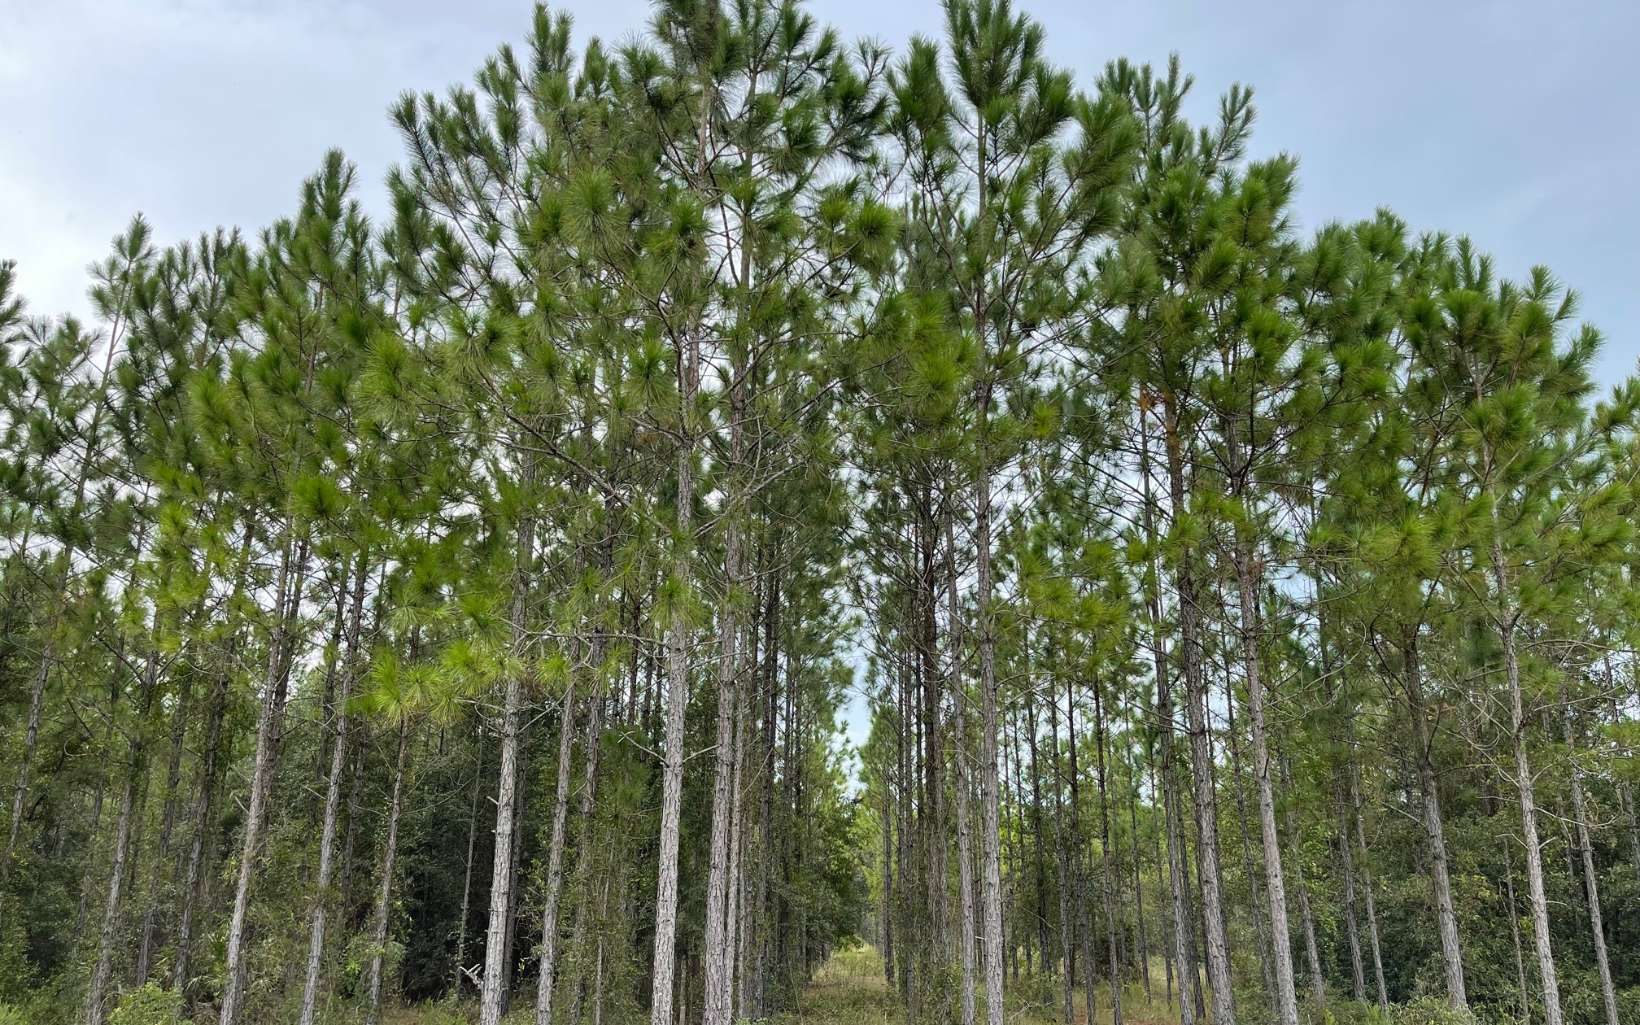 Great Investment, Live Out on the Land and Watch The Timber and Wildlife Grow. Many Uses For This Large Tract of Land. Live Where You Can Breathe Fresh Air With A Short Straight Drive to Gainesville, Approx 23 Miles. Tract is Between Newberry and Trenton. Lots of High Dry Land with some low spots.